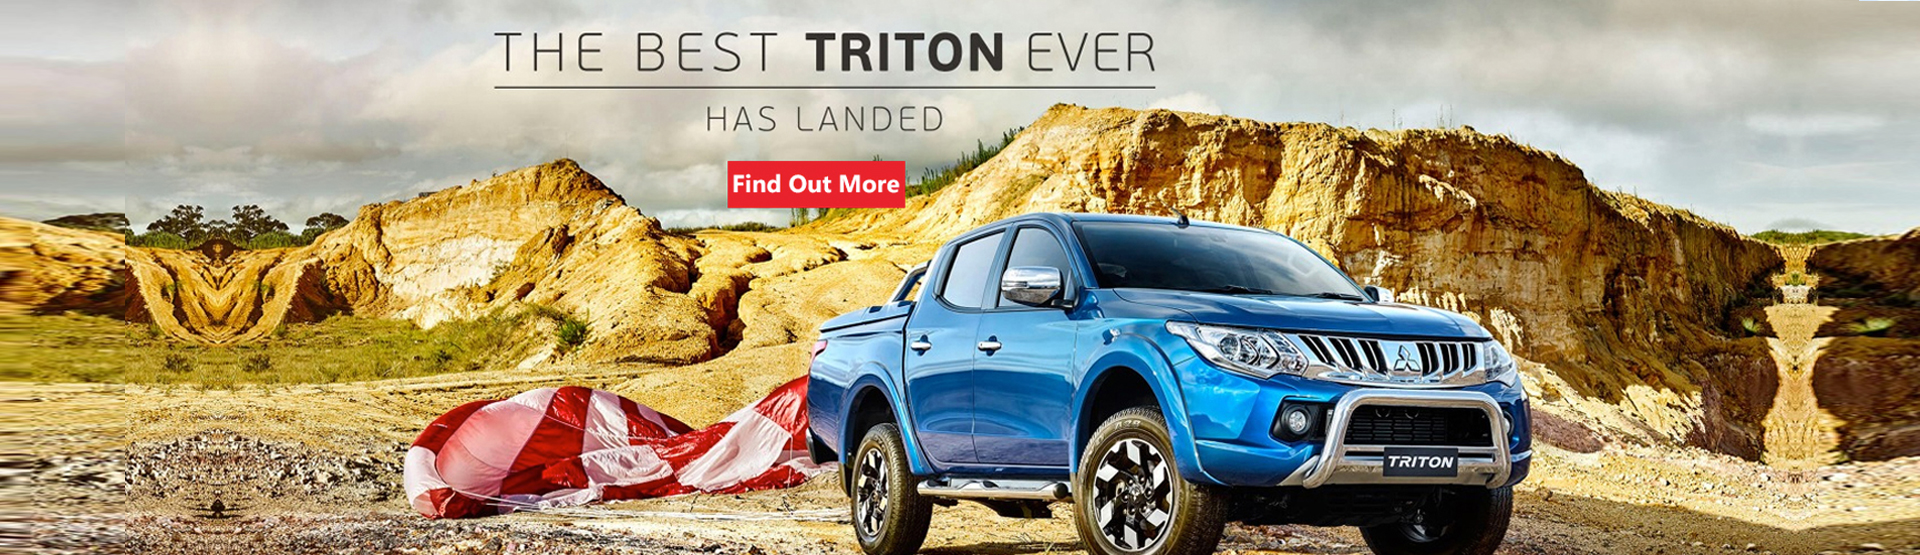 The best Triton 4x4 ever has landed at Redcliffe Mitsubishi Brisbane. Find out more today.